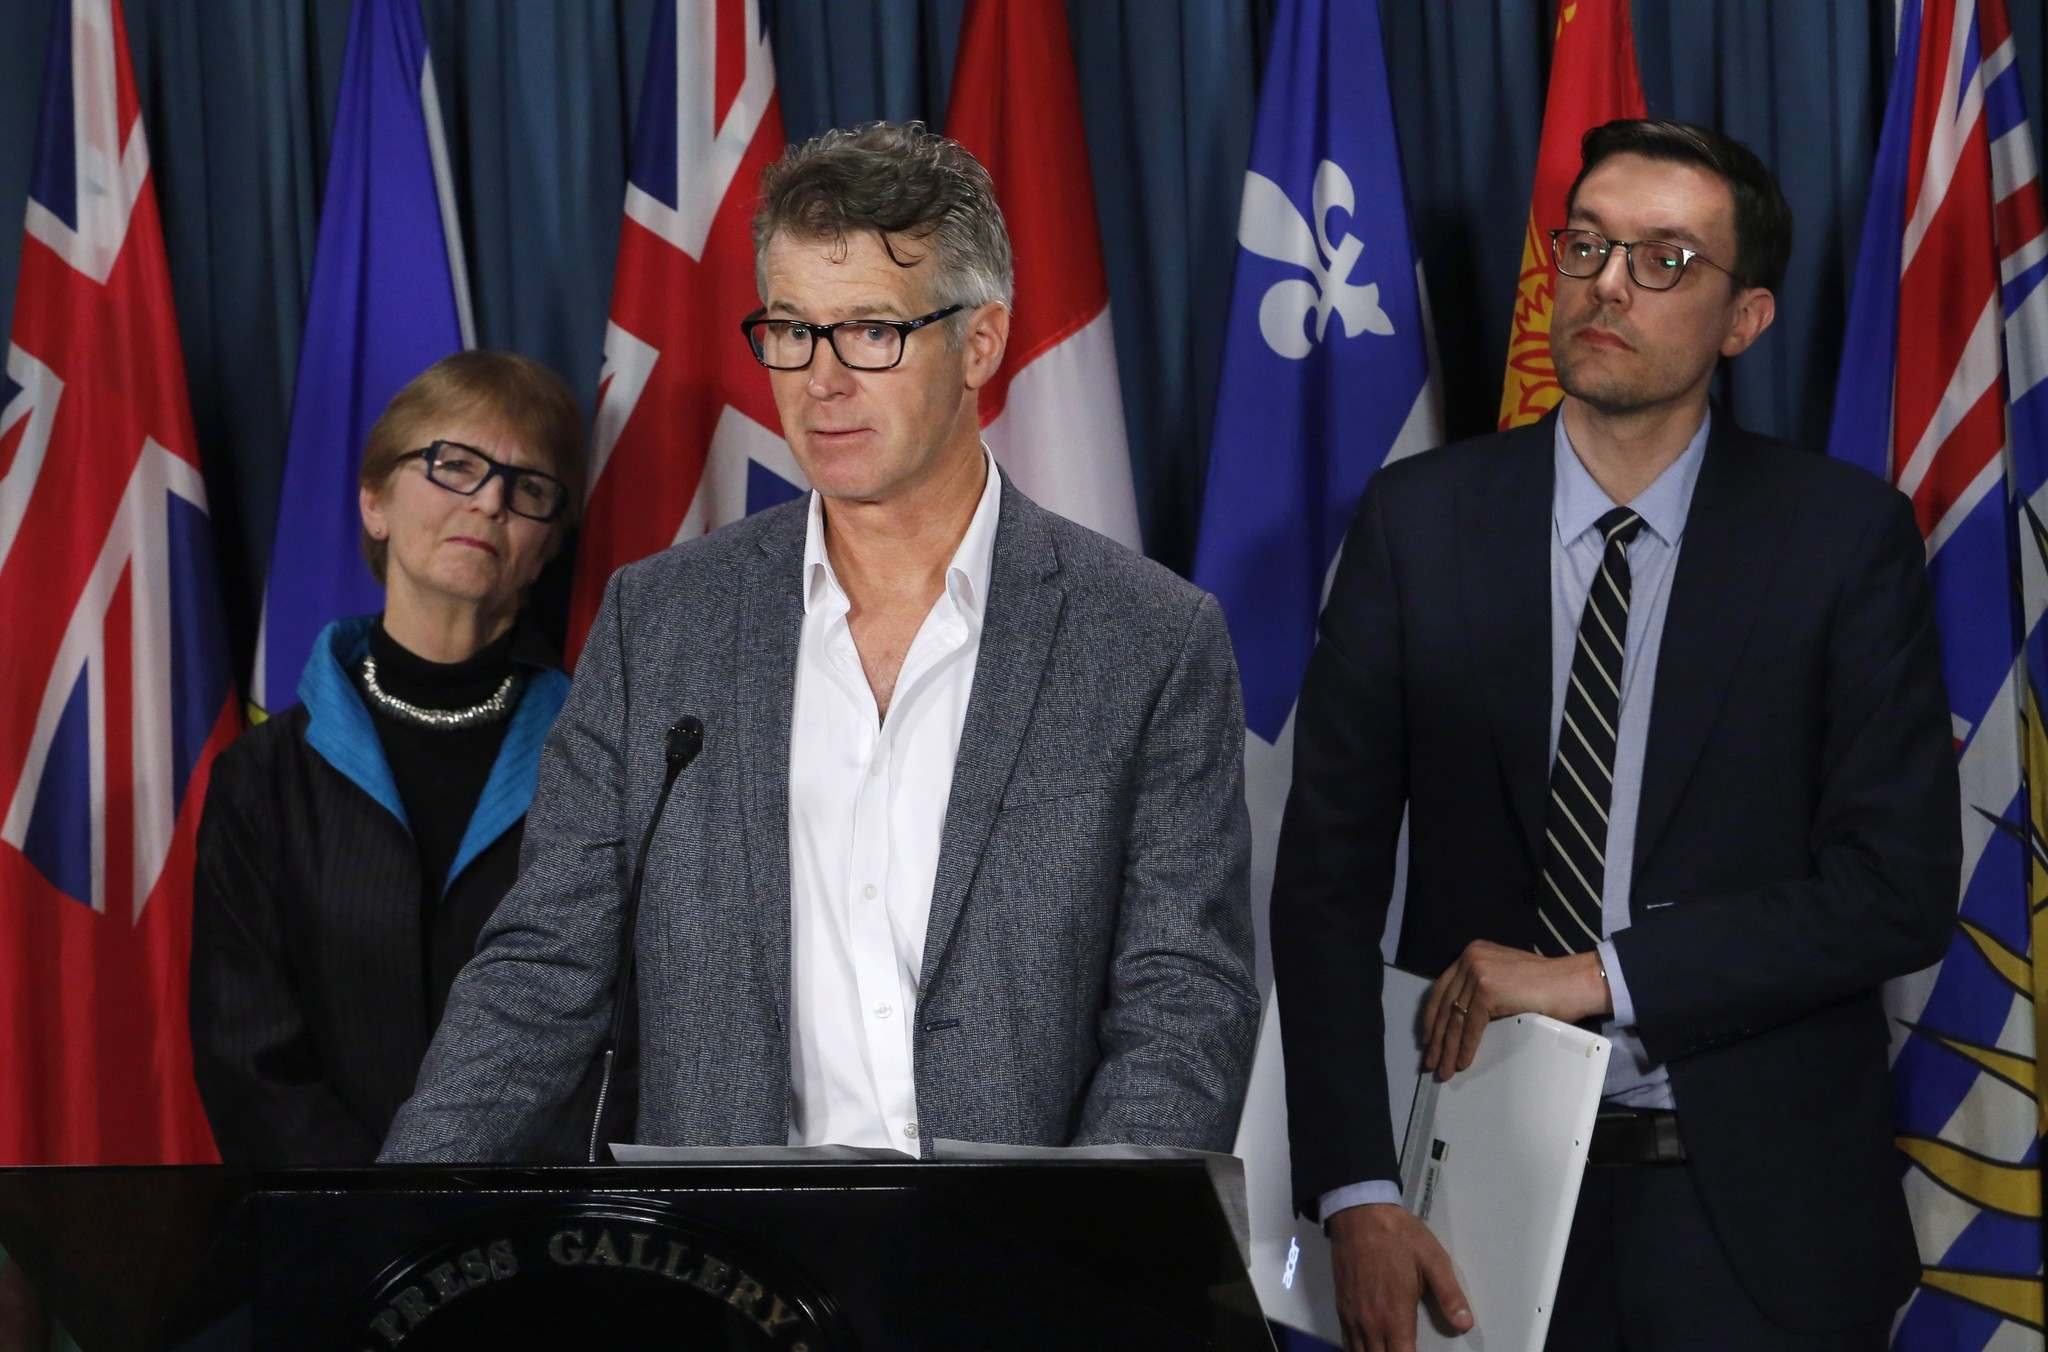 PATRICK DOYLE / THE CANADIAN PRESS FILES</p><p>Price Carter, son of Kay Carter, speaks at a news conference on Bill C-14, while his sister, Lee Carter, and Josh Paterson, executive director of the B.C. Civil Liberties Association, listen on Parliament Hill in April.</p>